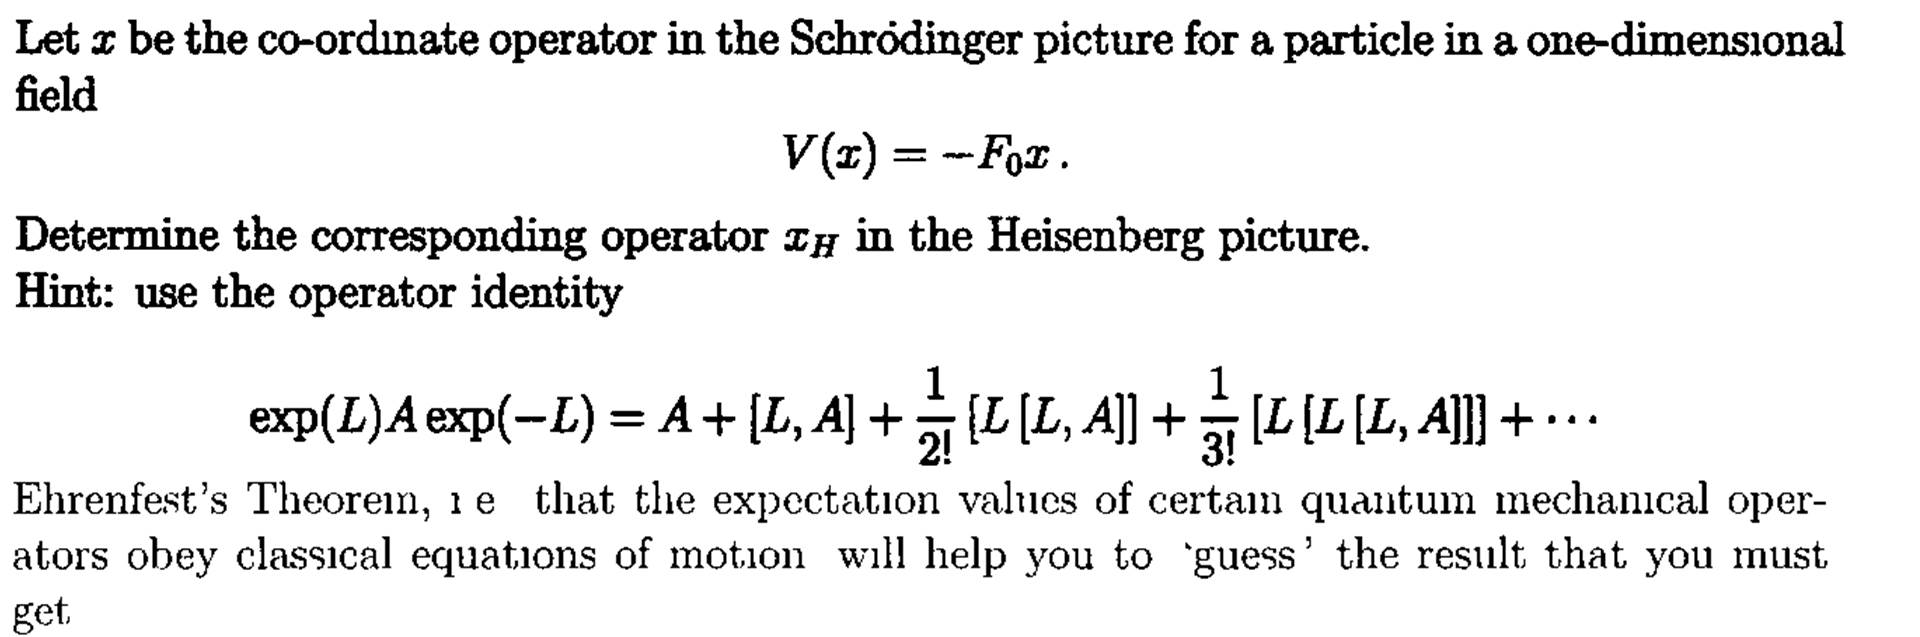 Let x be the co-ordinate operator in the Schroding